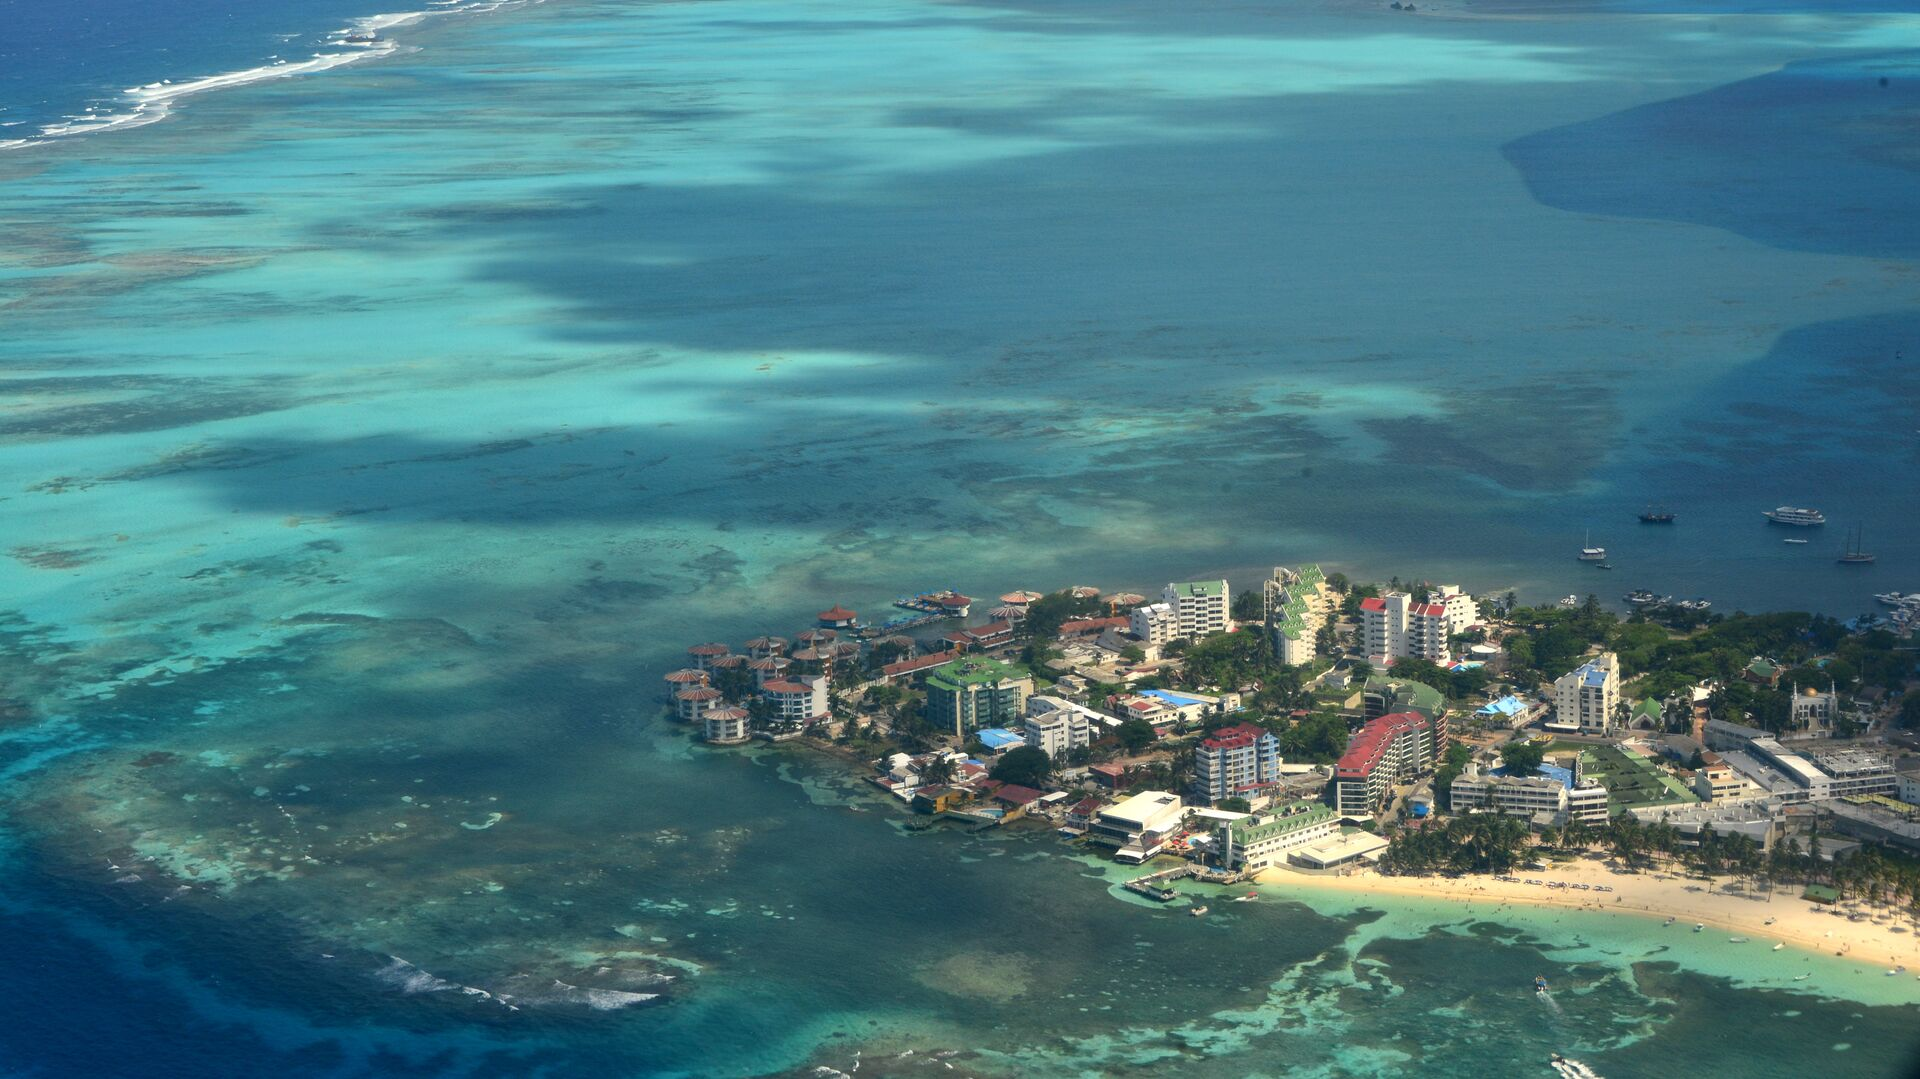 Aereal view of San Andres Island, Colombia on September 5, 2013.  - Sputnik Mundo, 1920, 01.10.2021